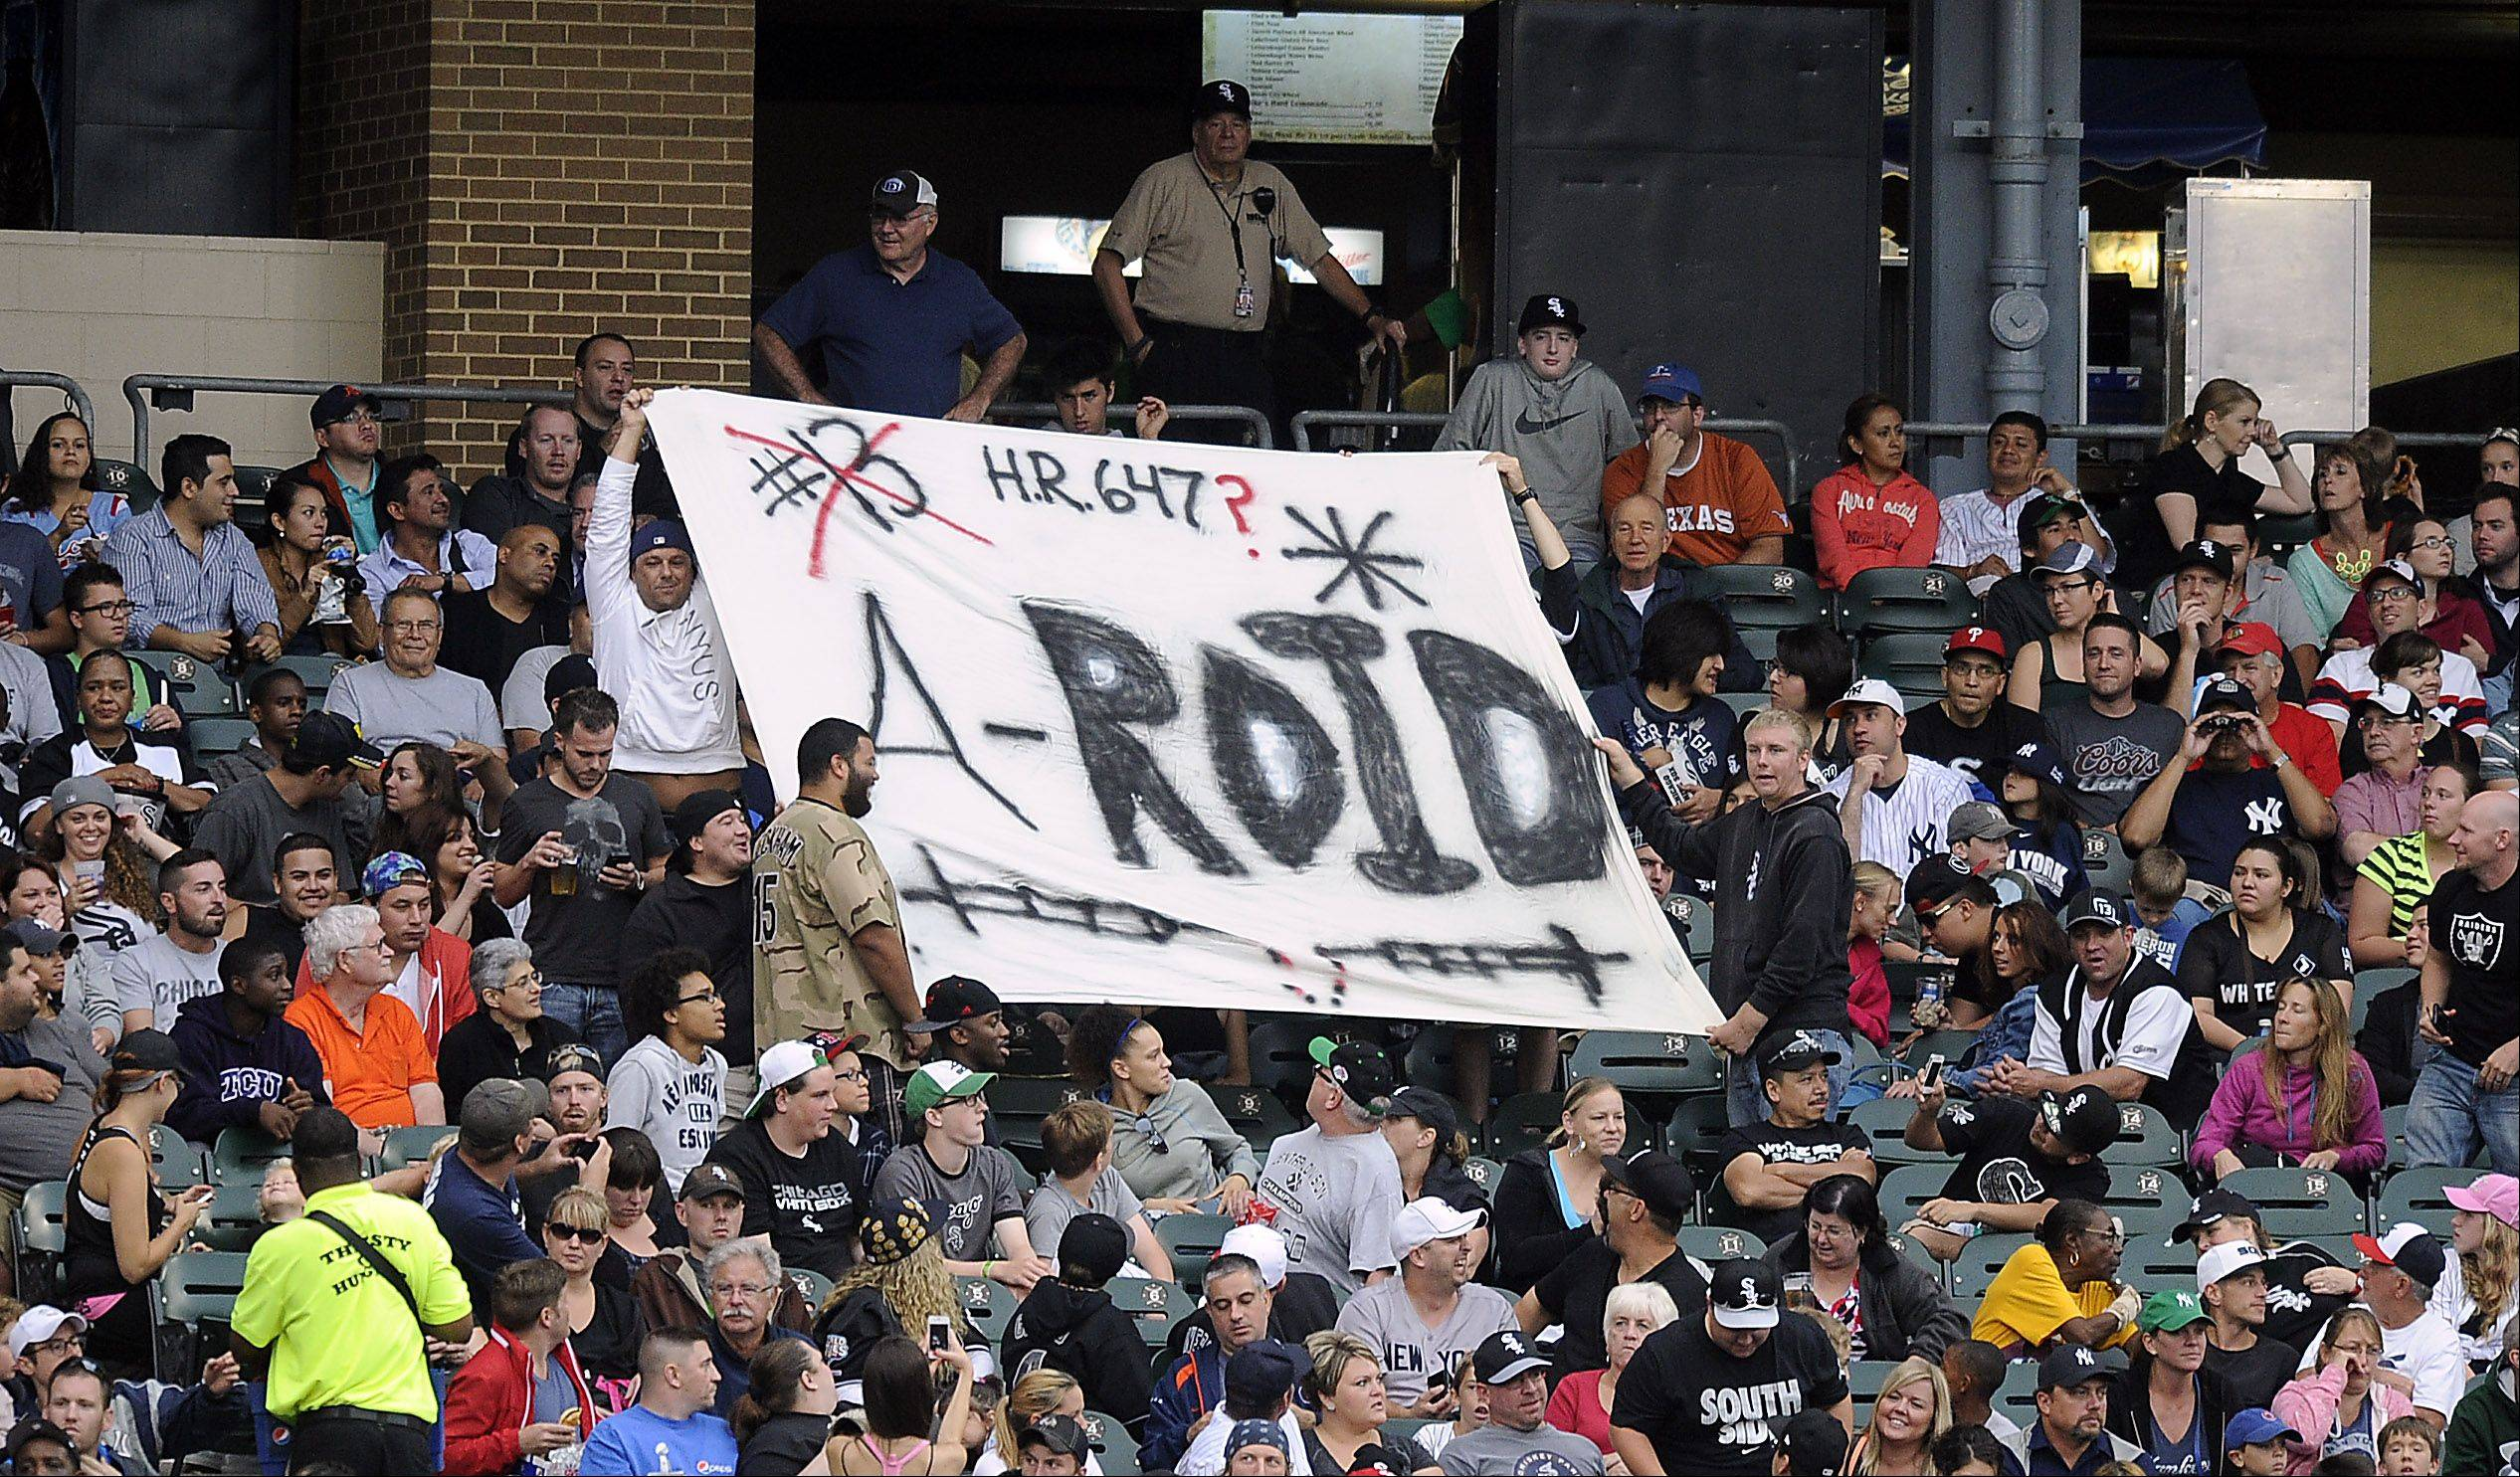 Fans express their feelings towards New York Yankees Alex Rodriguez at Cellular Field in Chicago on Monday.